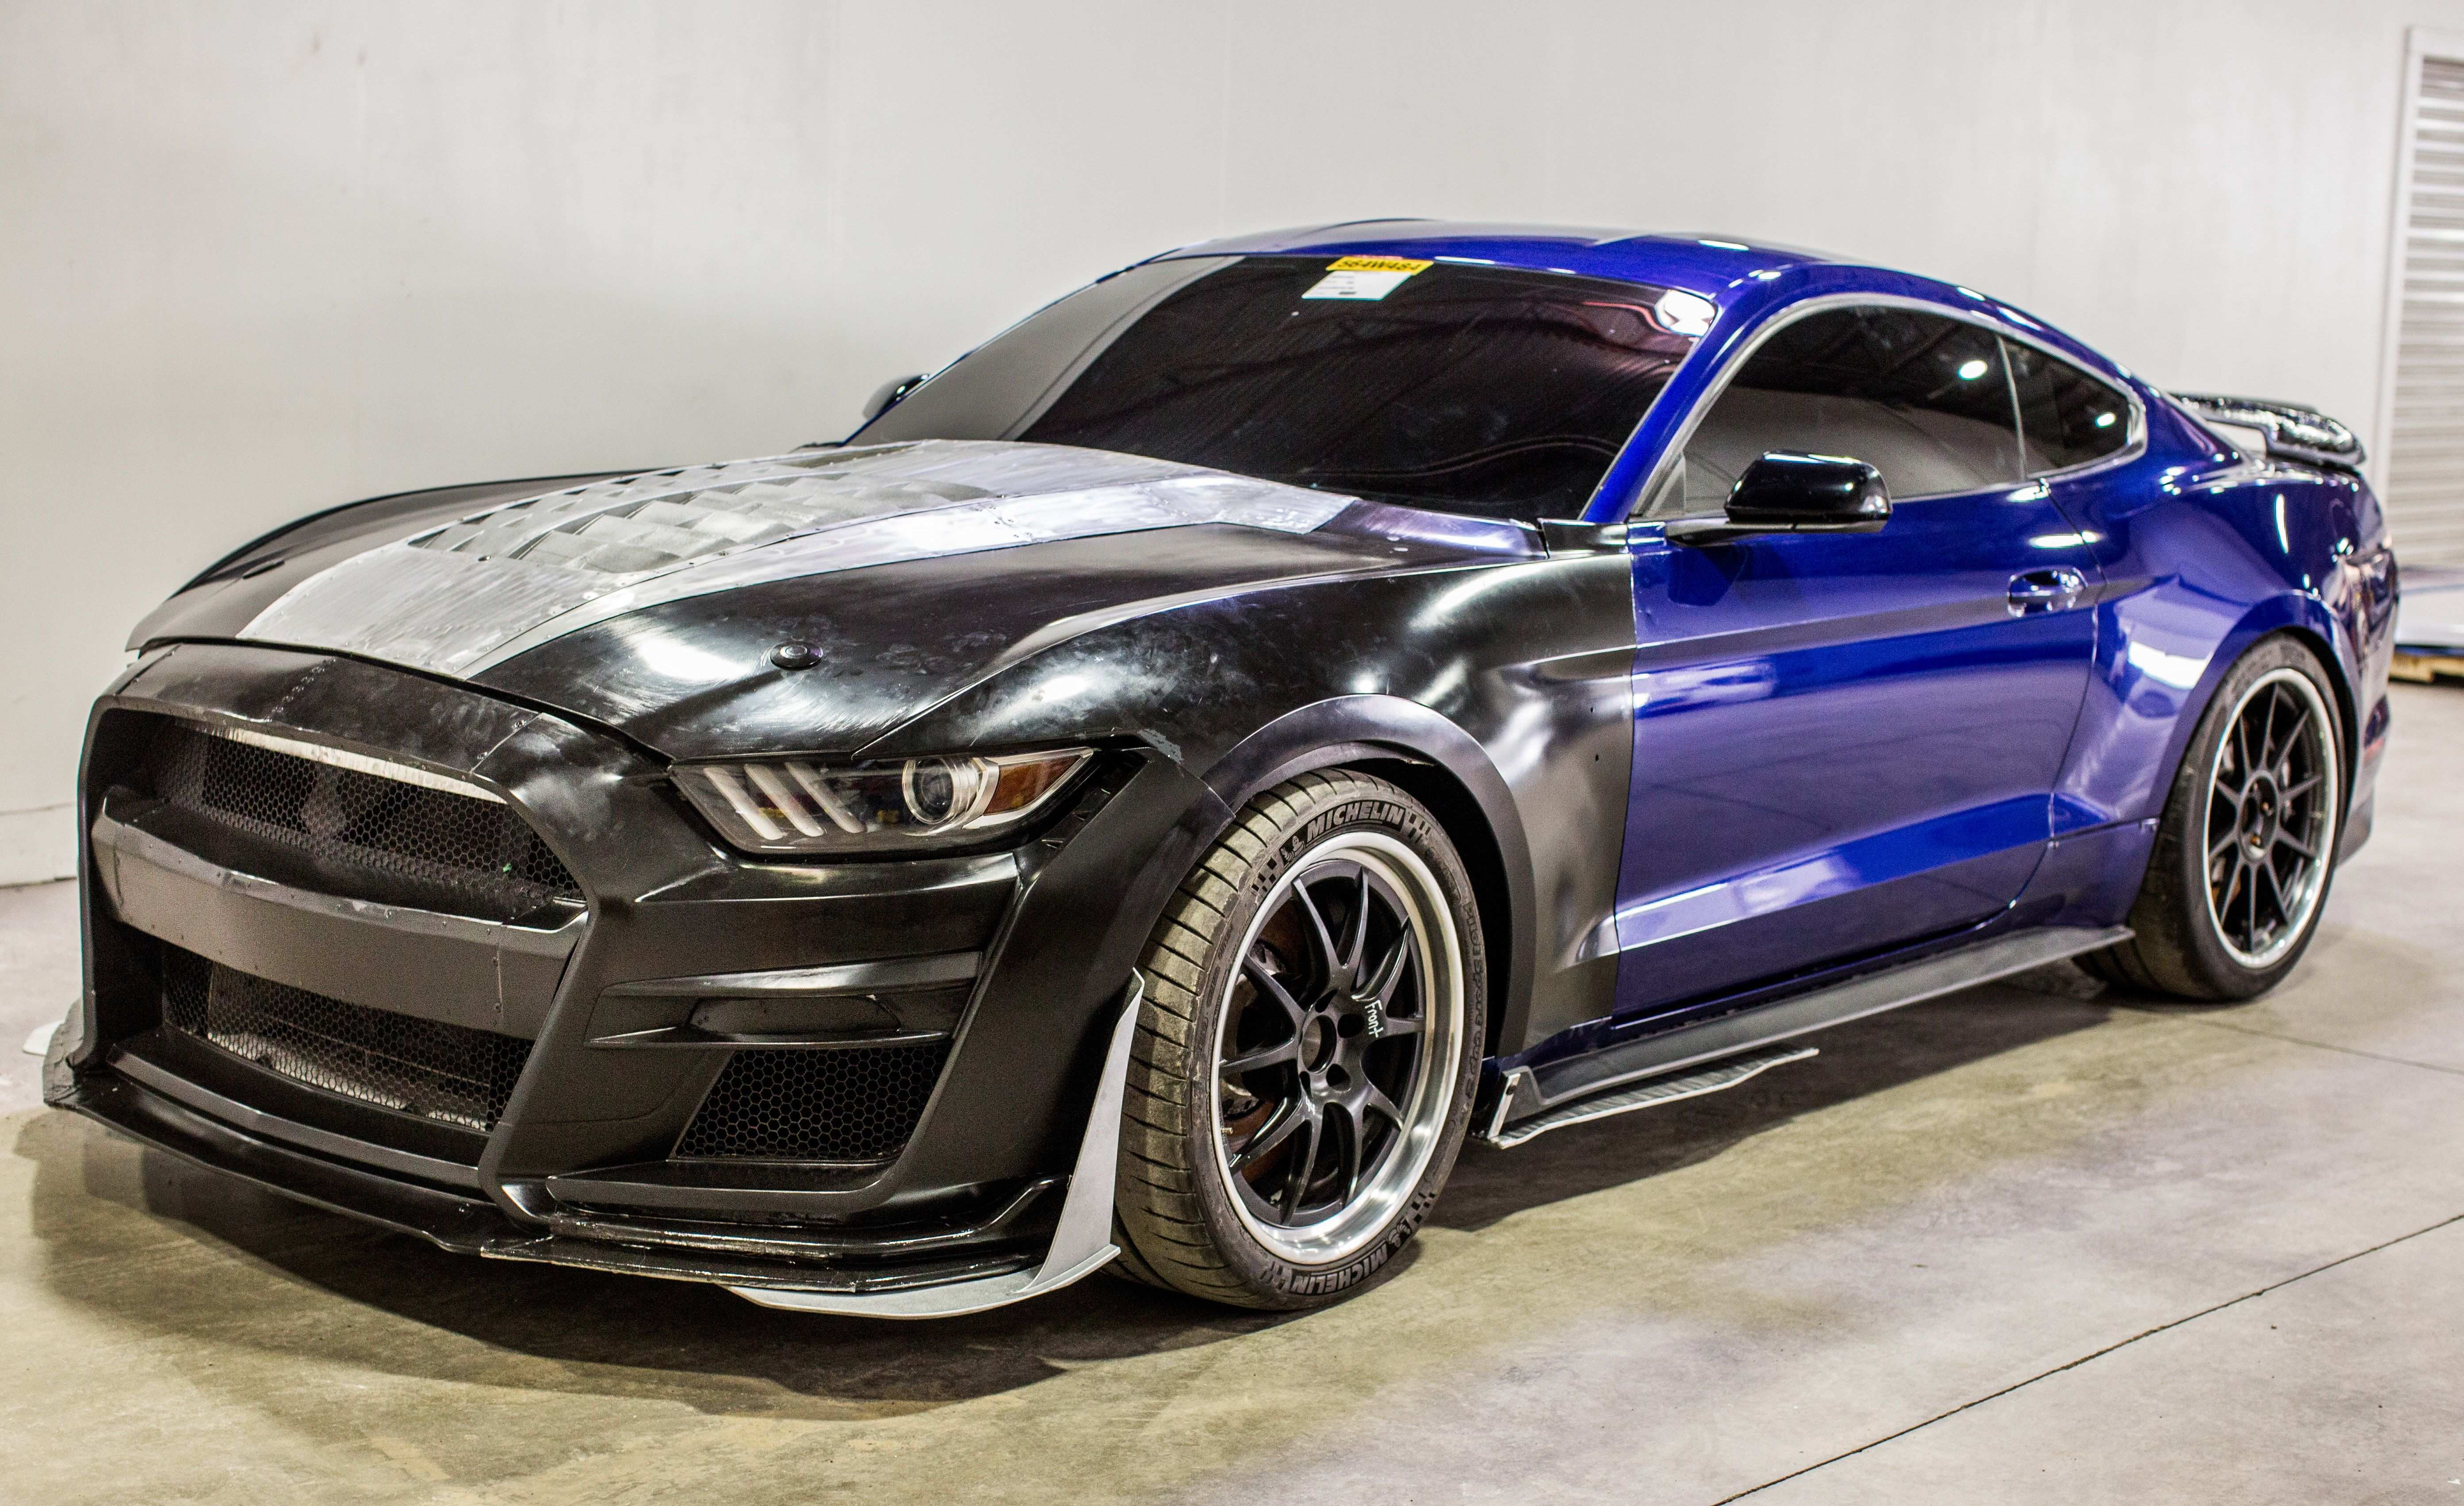 54 The 2020 Mustang Gt500 Price And Release Date